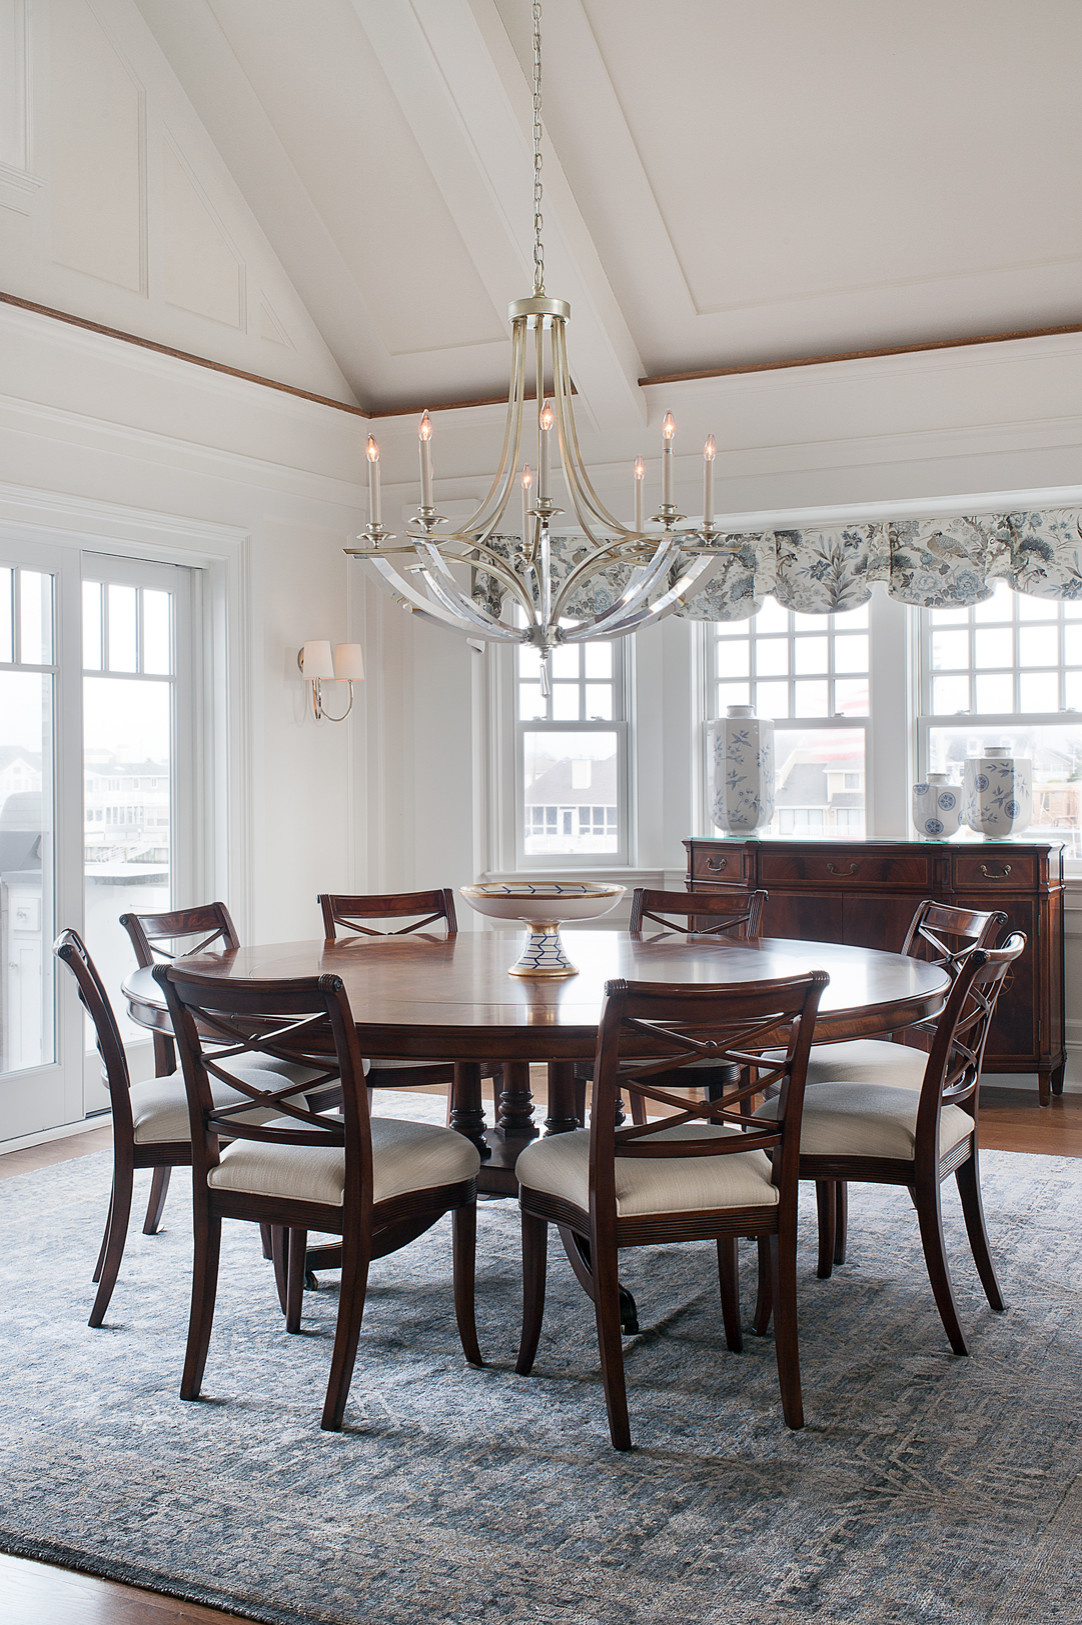 75 Beautiful Vaulted Ceiling Dining Room Pictures Ideas February 2021 Houzz